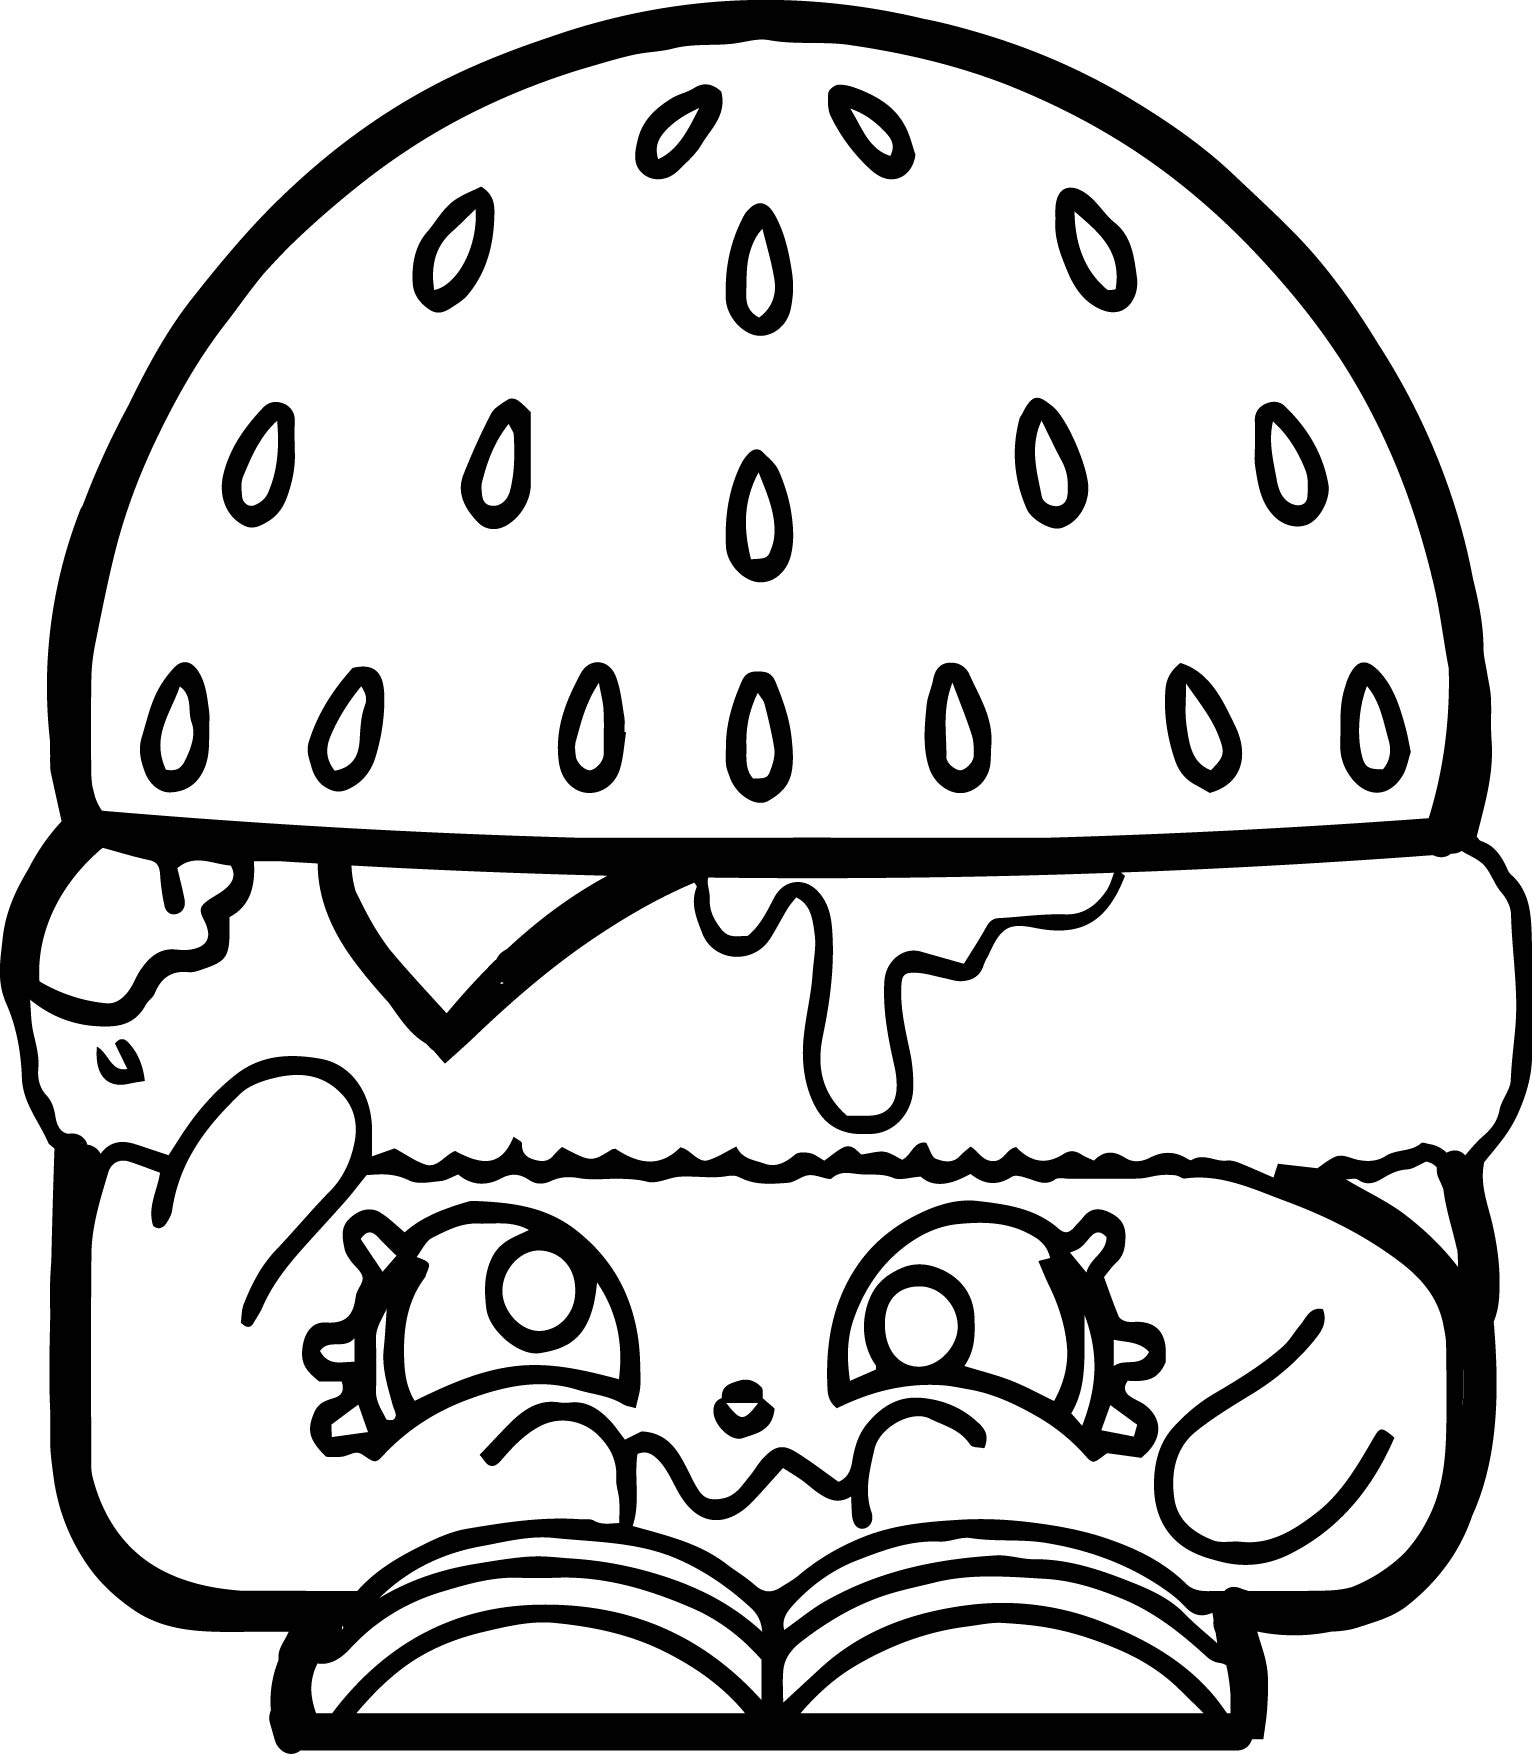 Ausmalbilder Playmobil Wild Life : 28 Hamburger Coloring Page Collections Free Coloring Pages